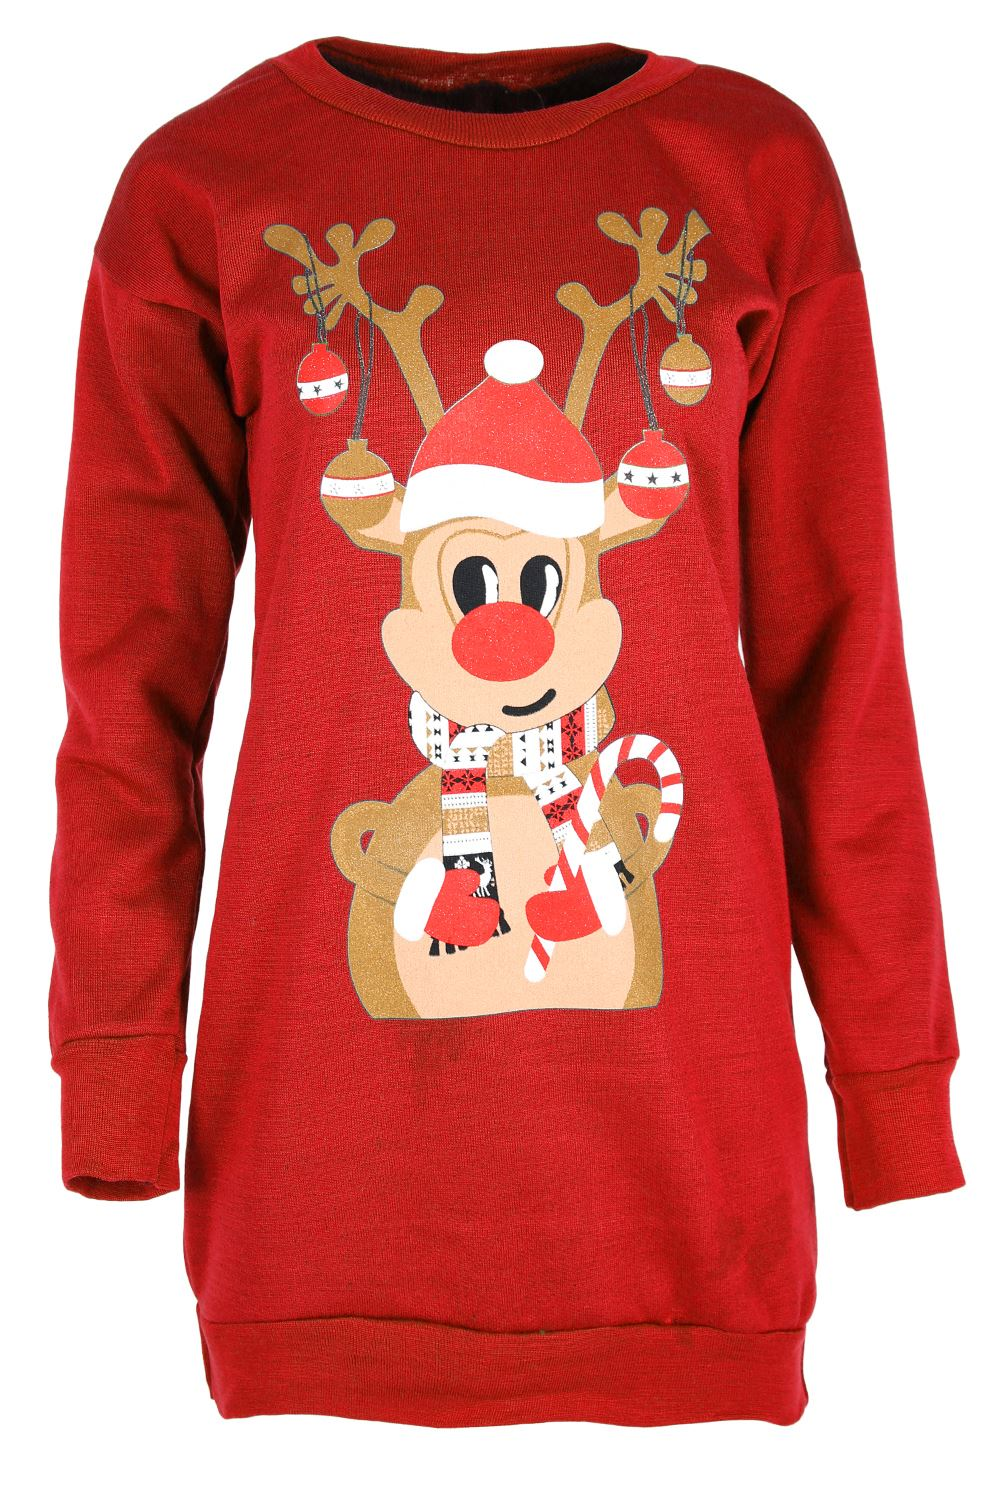 womens ladies christmas fleece snowman tree long tunic sweatshirt jumper dress ebay. Black Bedroom Furniture Sets. Home Design Ideas